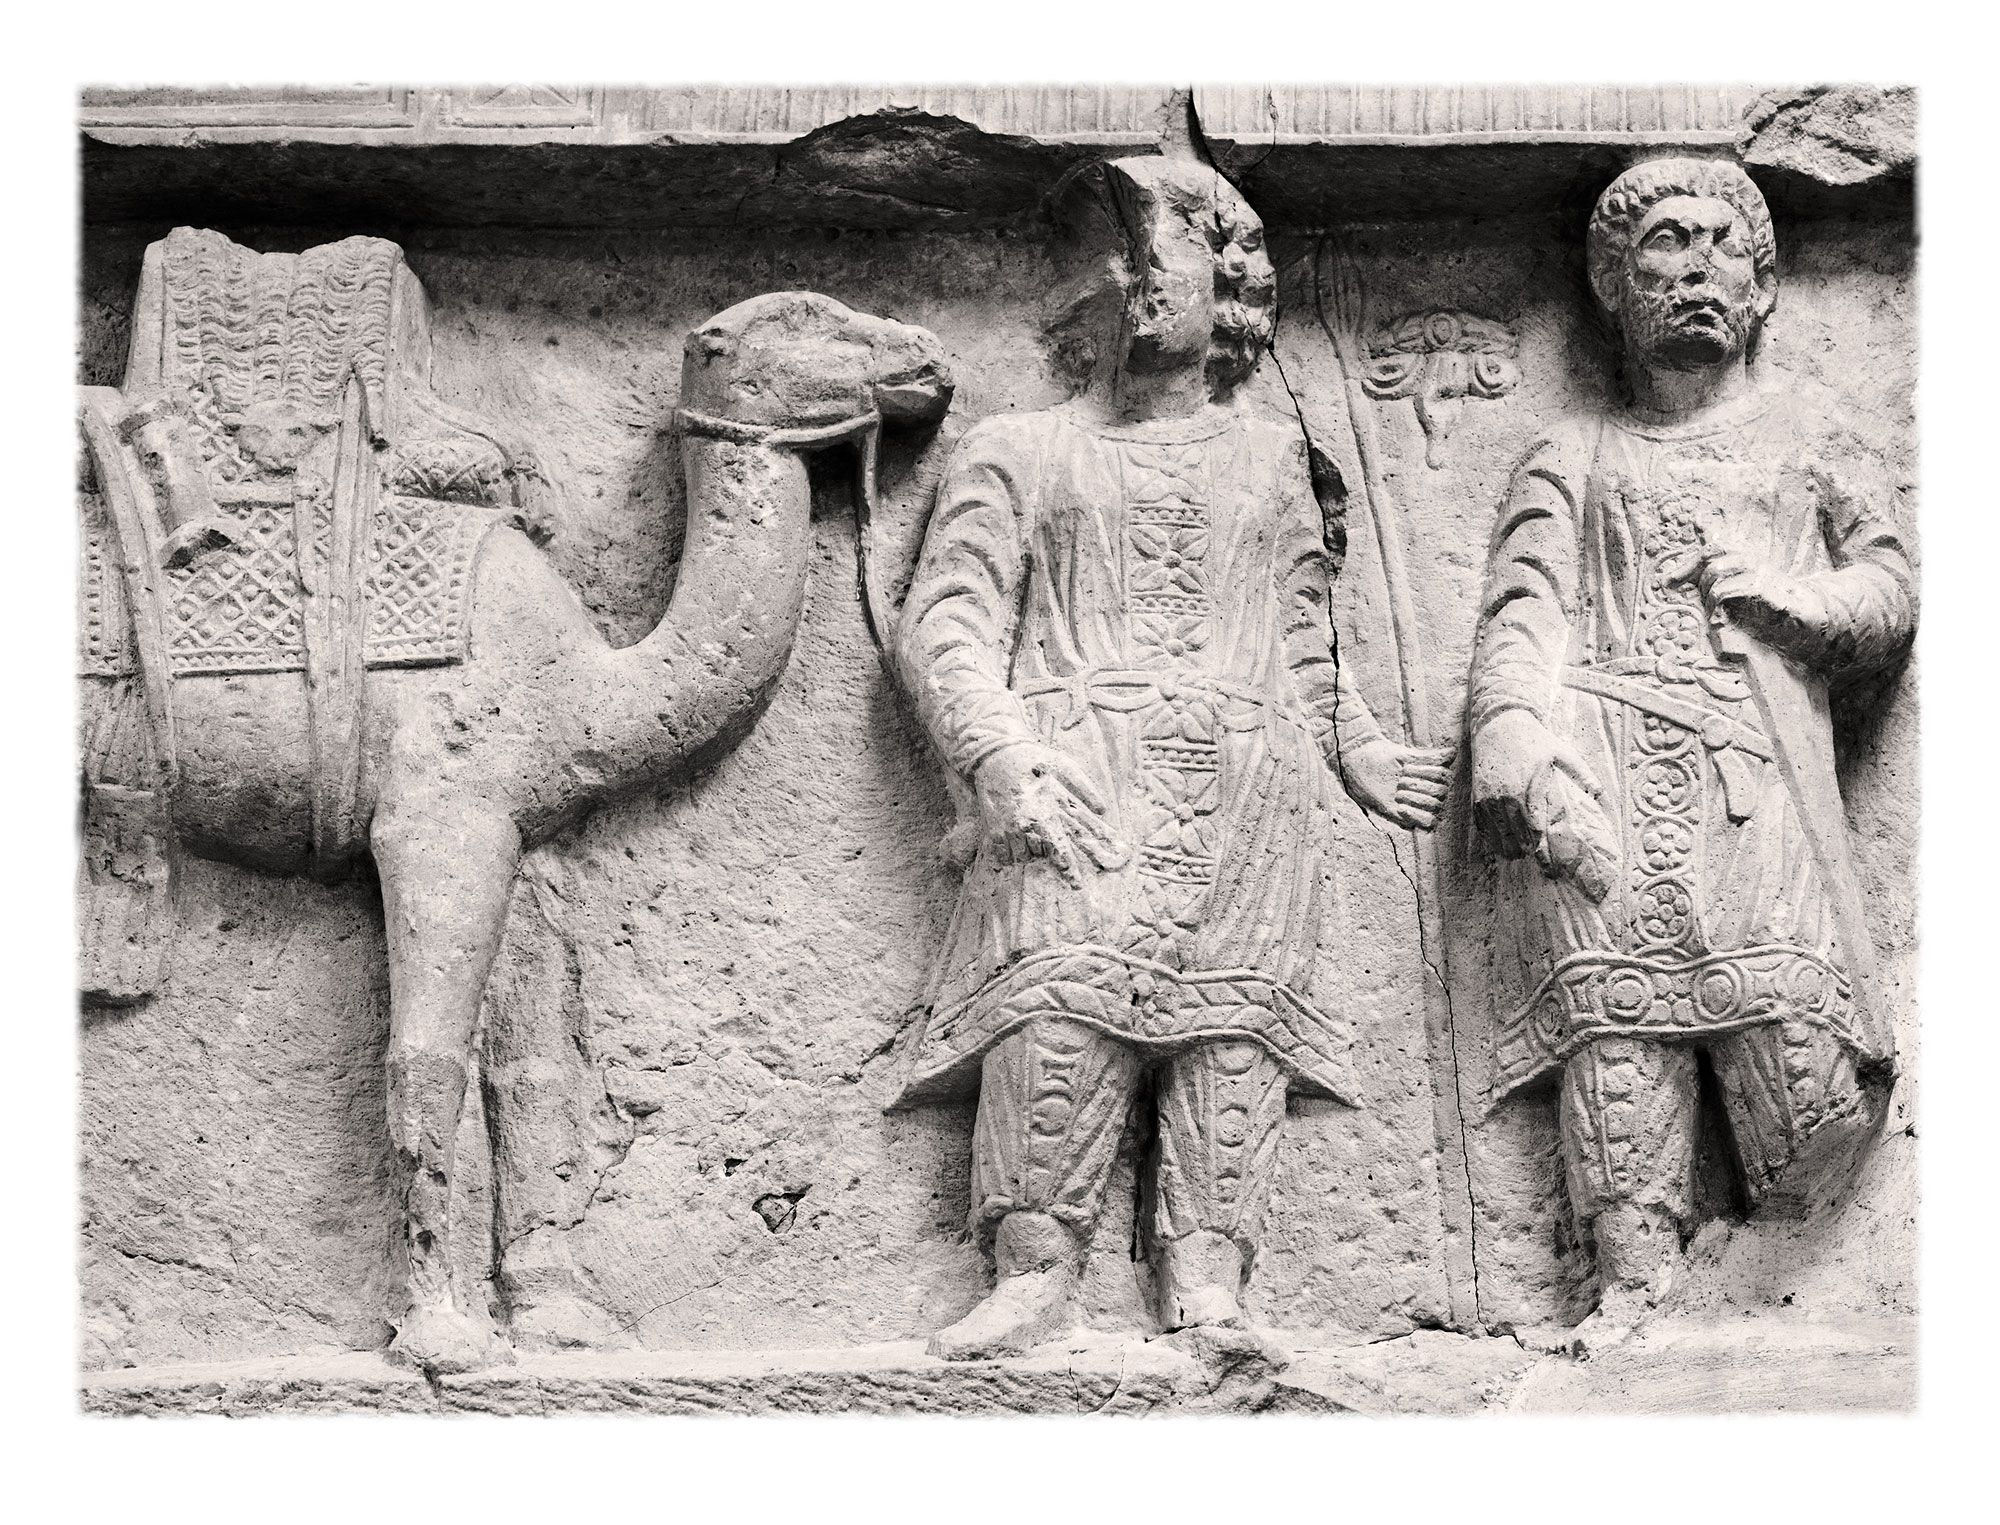 Palmyra earned its wealth through caravan trade between the Euphrates River (hence Persia, India and China) and the Mediterranean West (specifically, Egypt, Rome and, later, Byzantium). Note the Parthian dress of the two men.